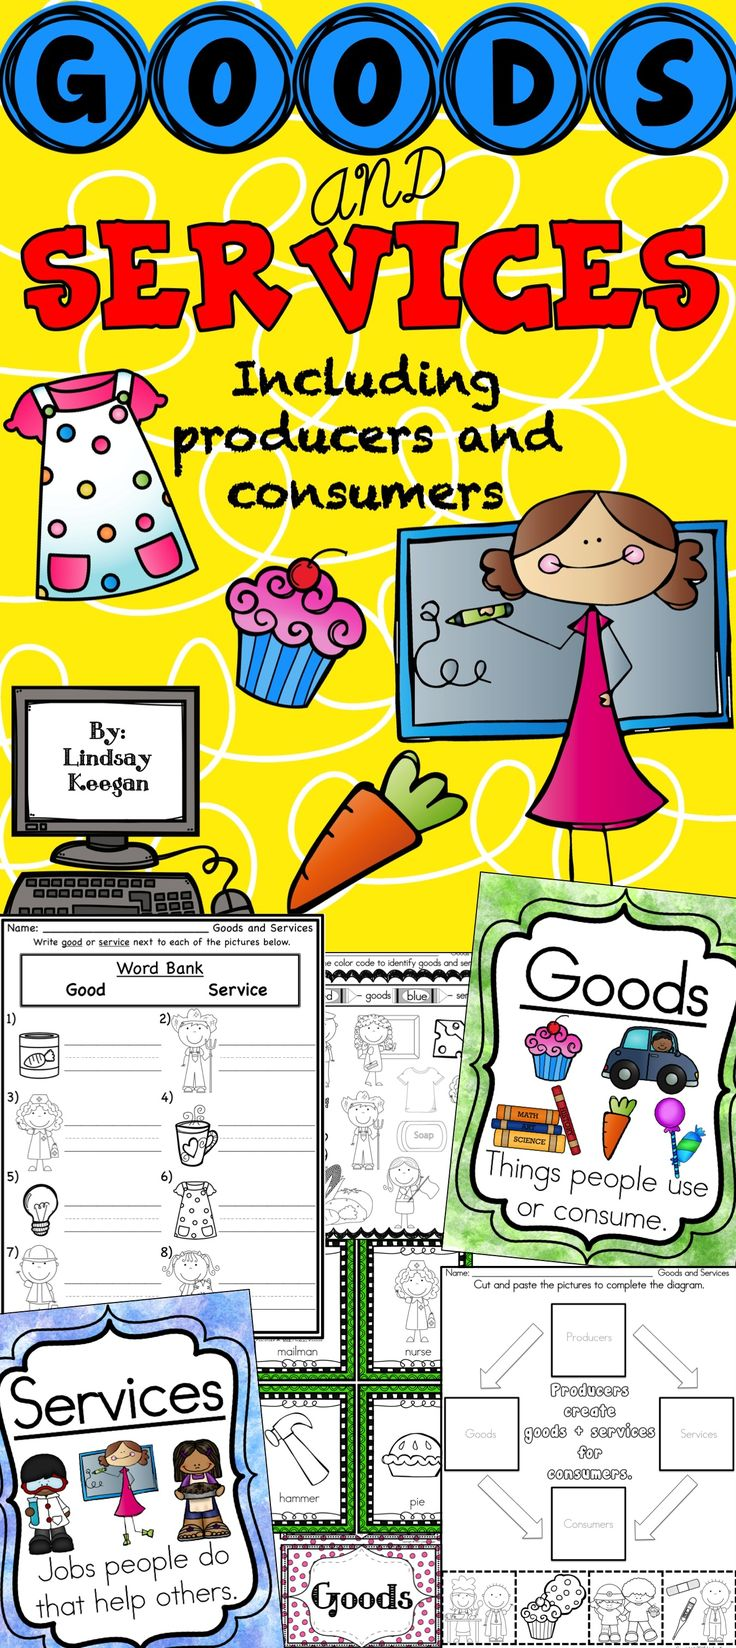 Goods and services including producers and consumers.